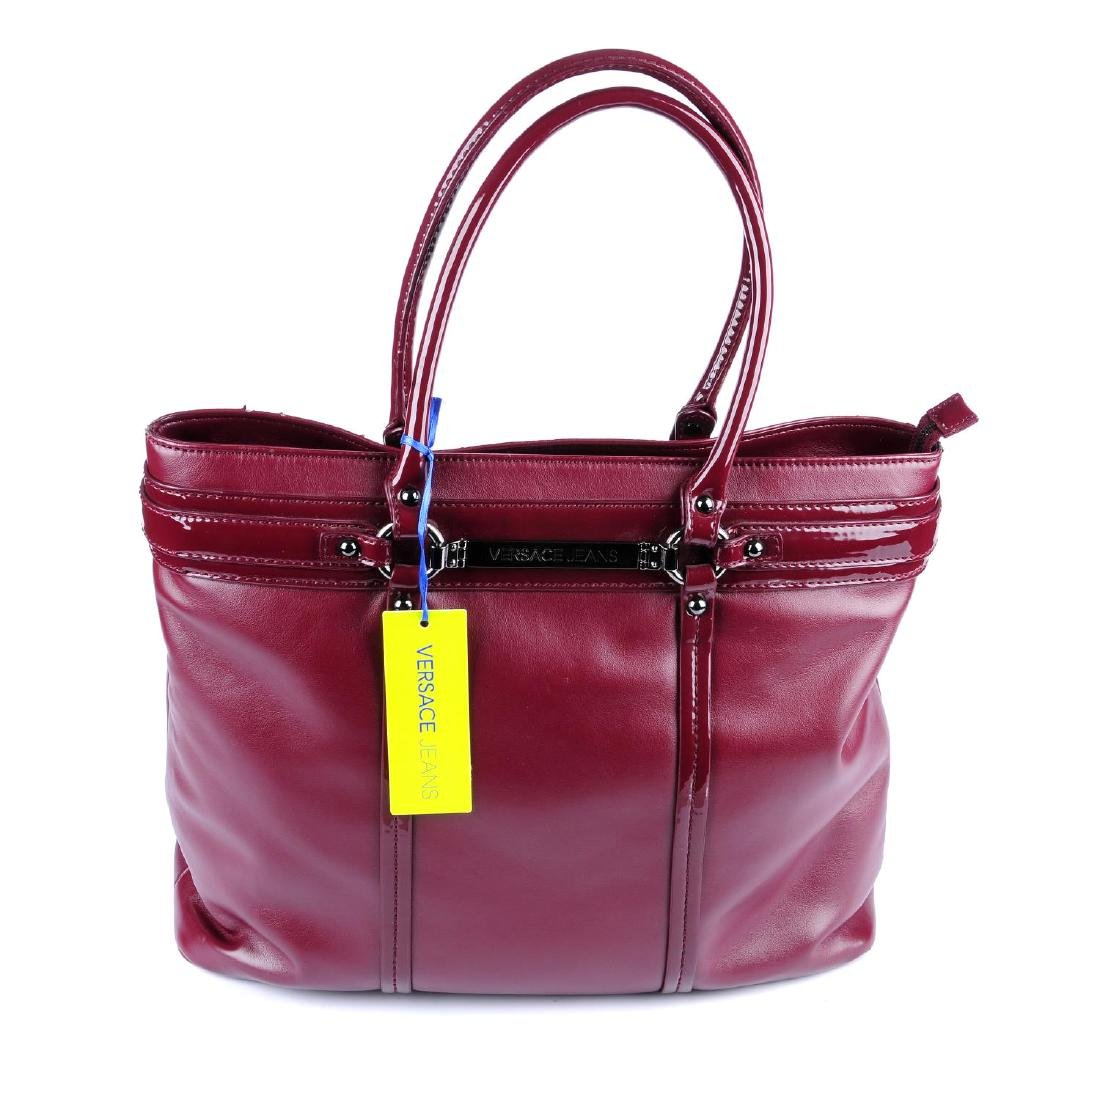 VERSACE JEANS - a burgundy handbag. Crafted from soft